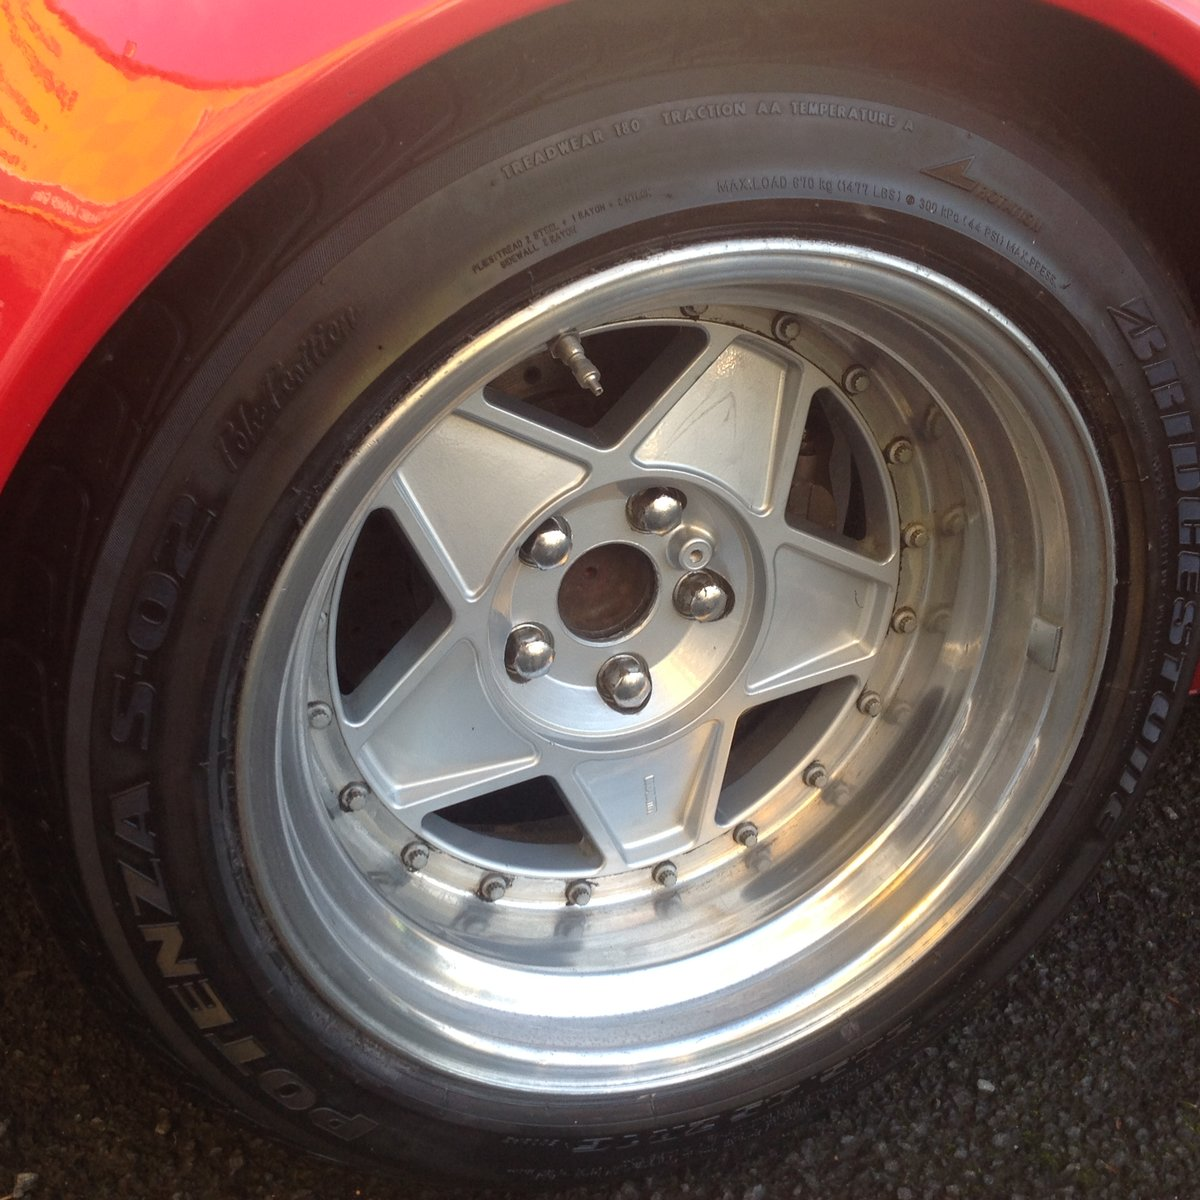 1977 Ferrari 308GT4 - Championship Winning Car For Sale (picture 6 of 6)